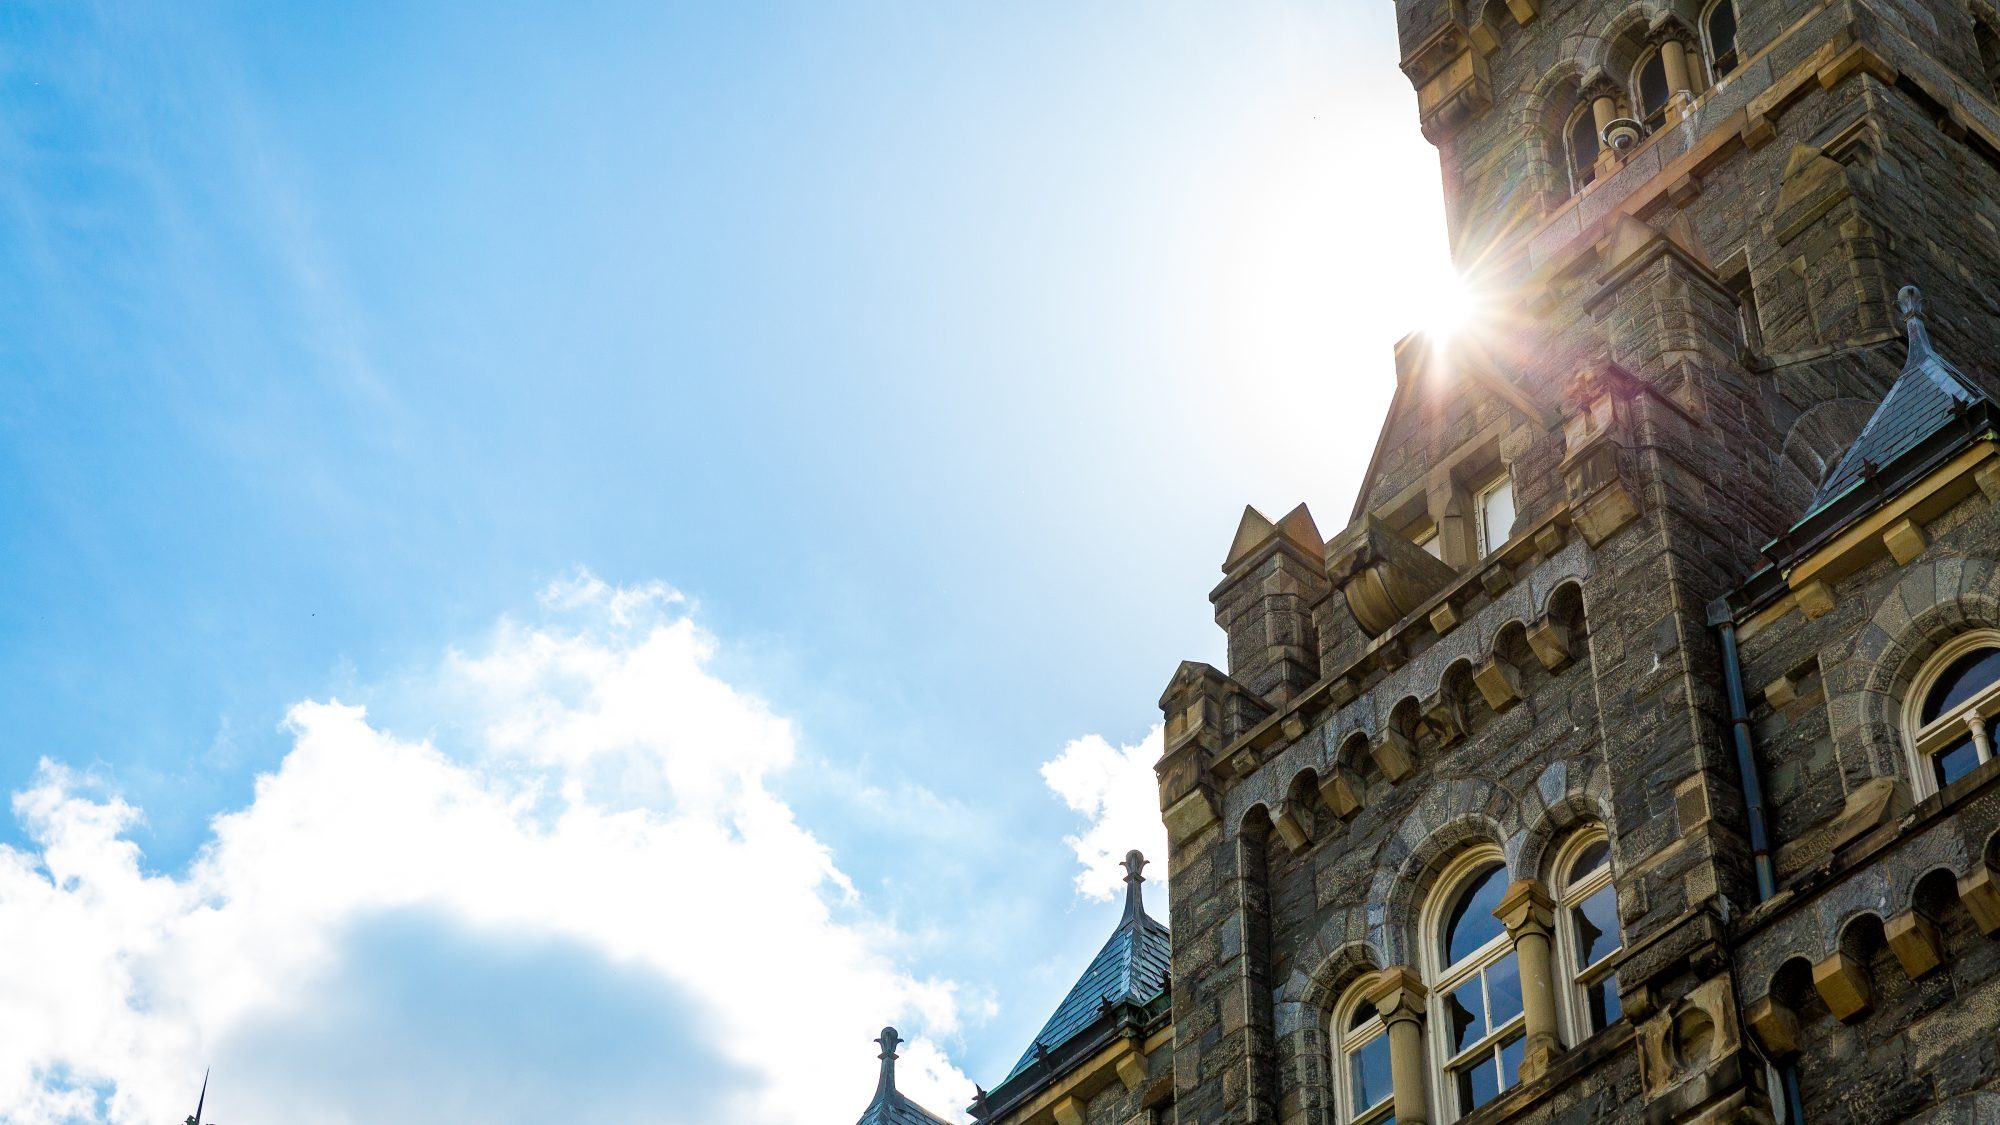 Sunburst behind the clock tower of Healy Hall